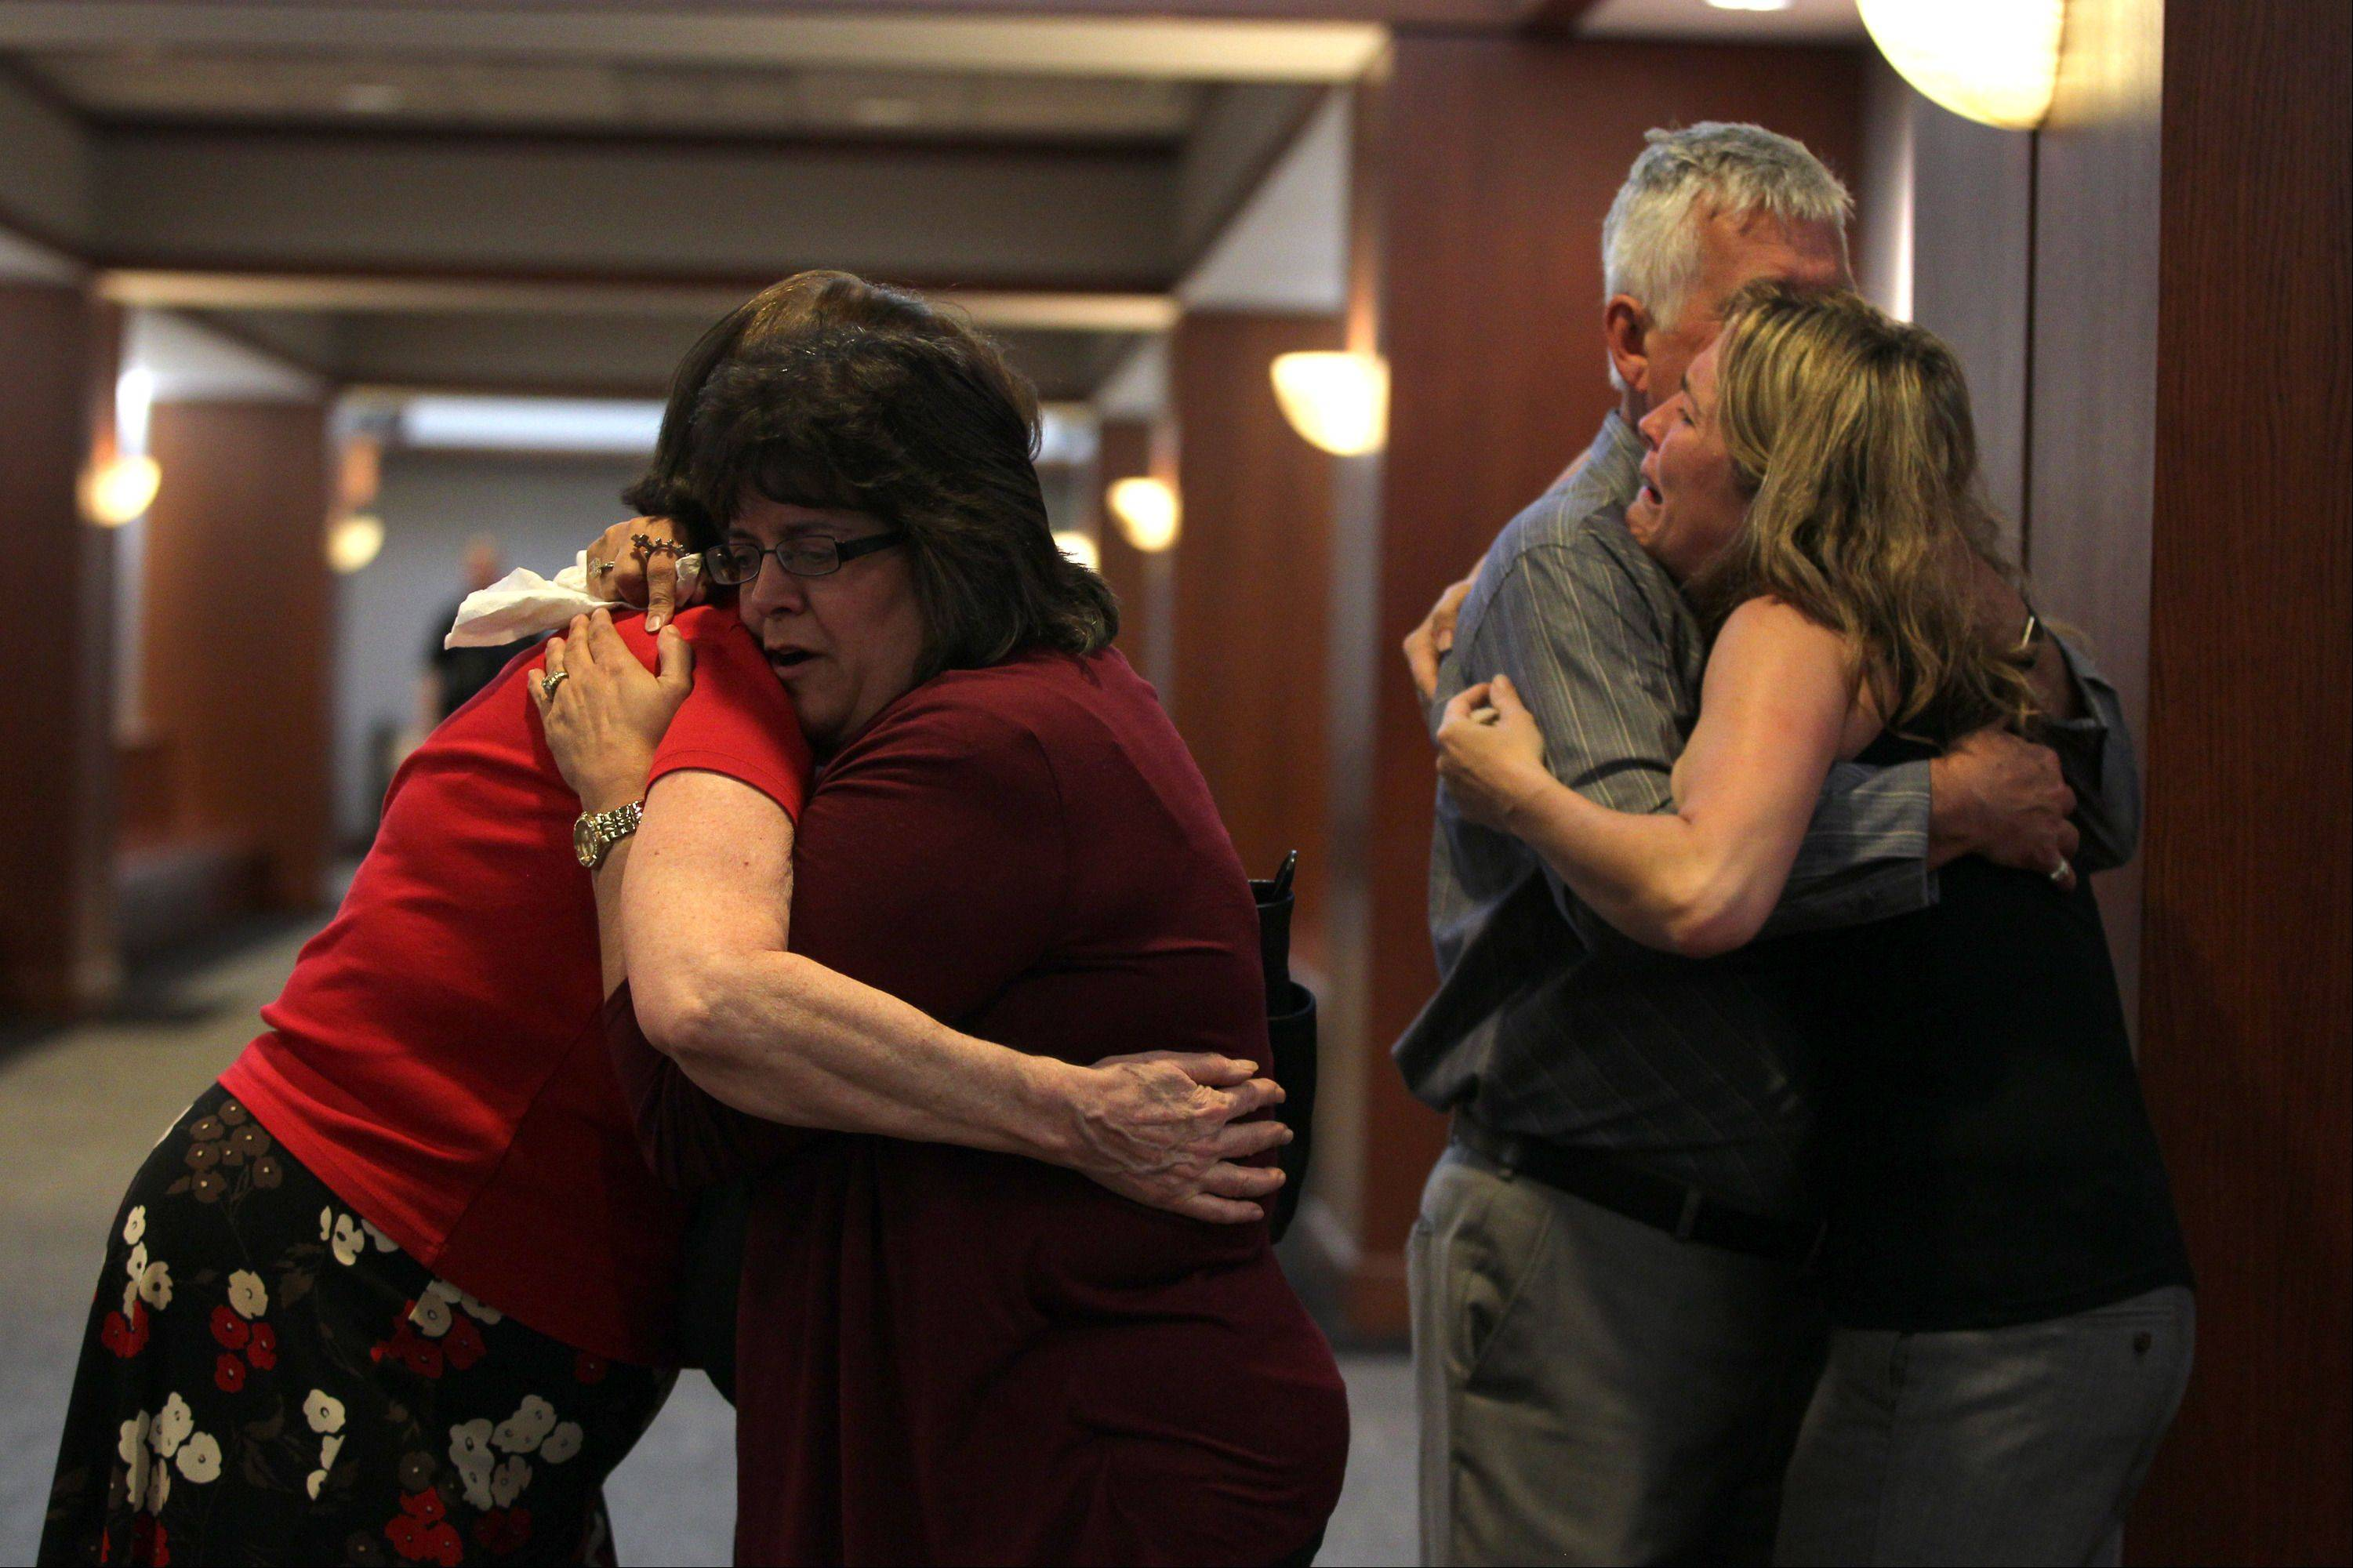 Friends and relatives of the Kramer family embrace Tuesday at the DuPage County courthouse in Wheaton after Johnny Borizov was found guilty of directing the murders of Jeffrey Kramer, his wife, Lori, and their son Mike.